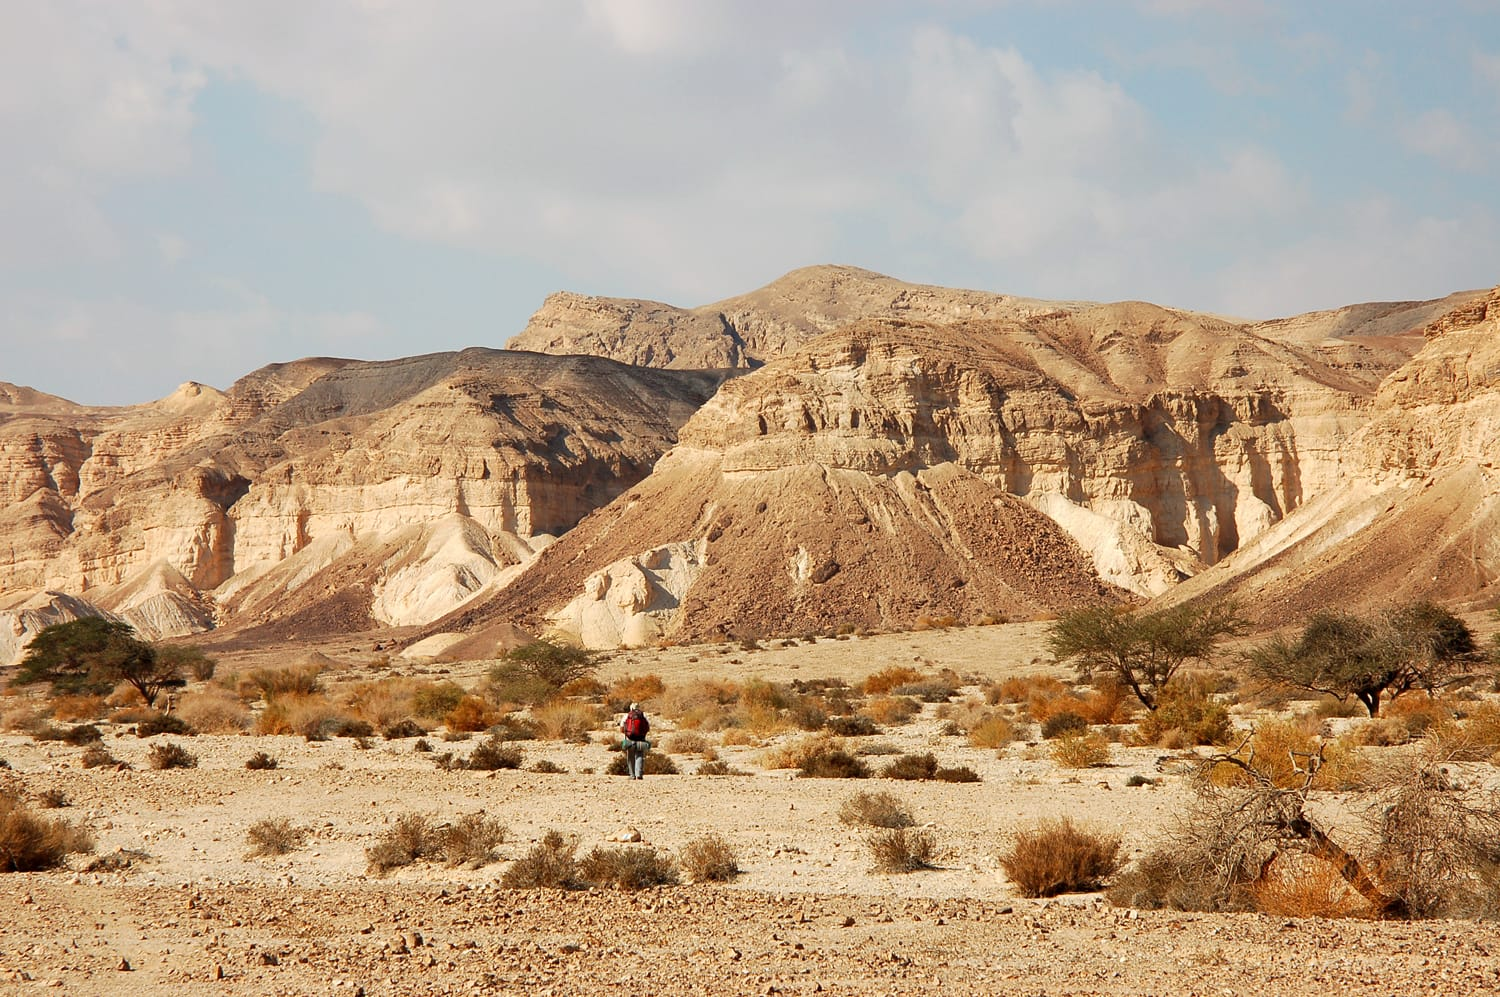 Hiking in Negev desert, Israel.